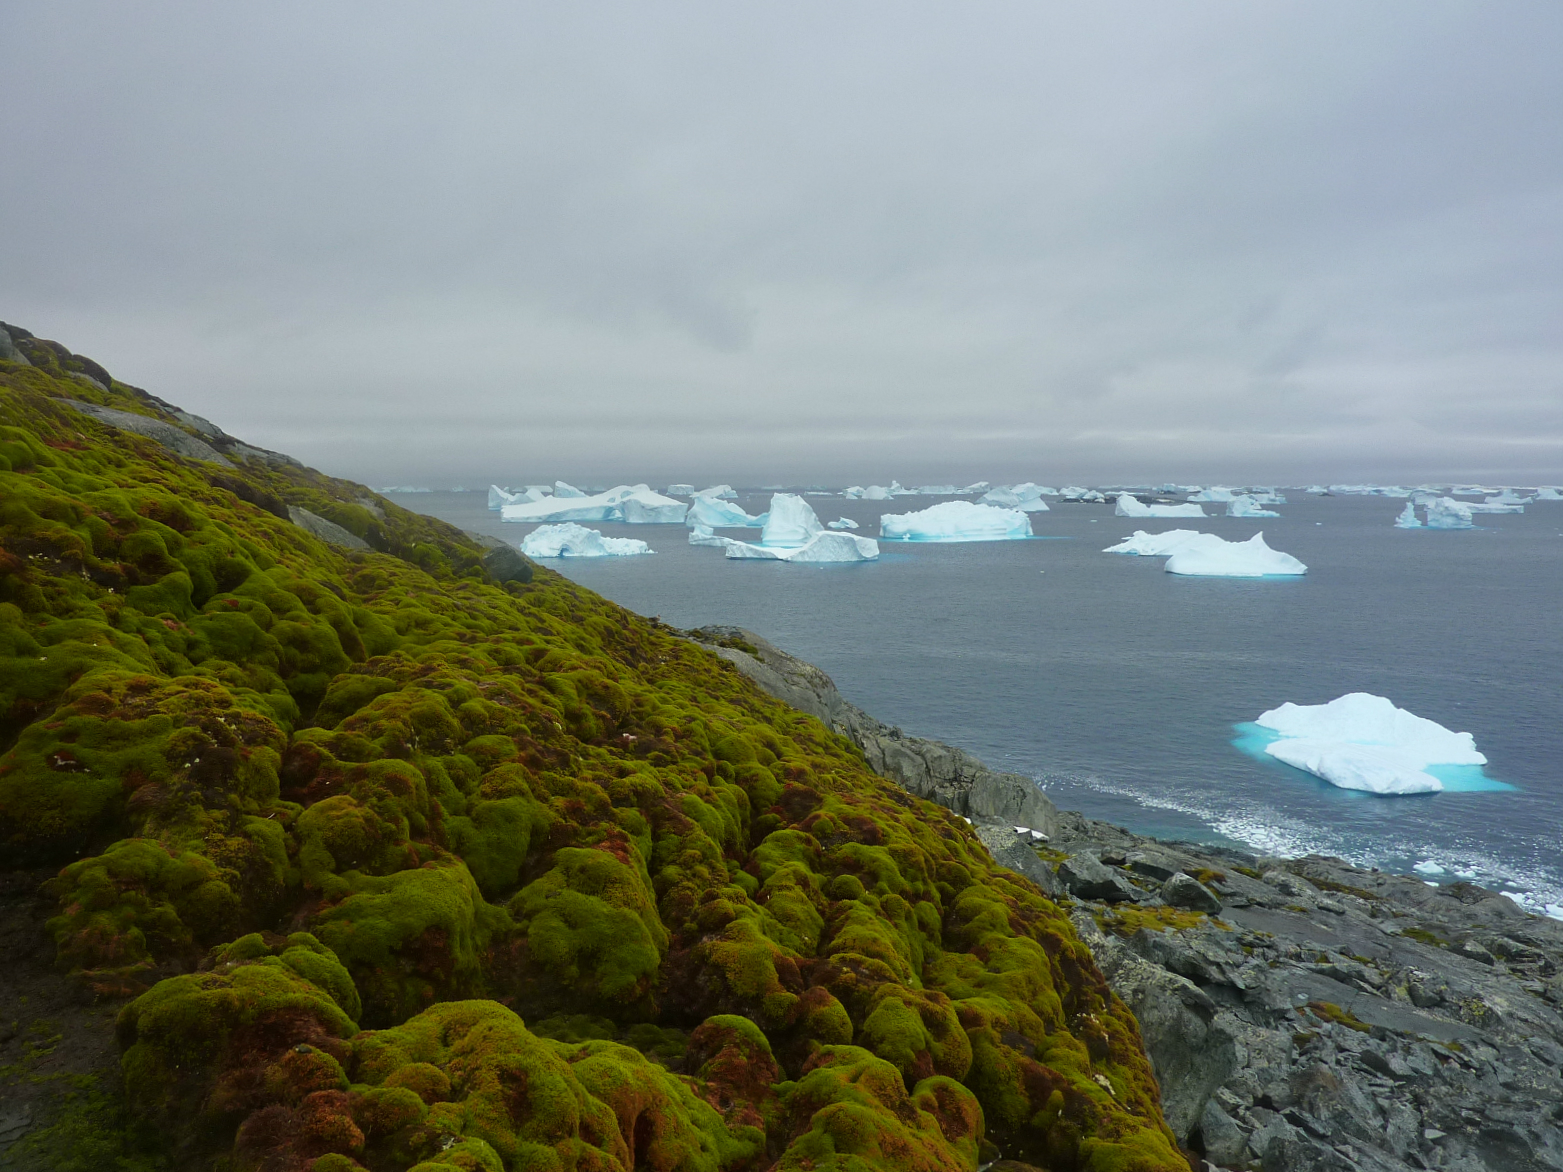 Weather patterns in Antarctica are rapidly changing, and the continent is about to get much greener if the temperatures continue to climb.